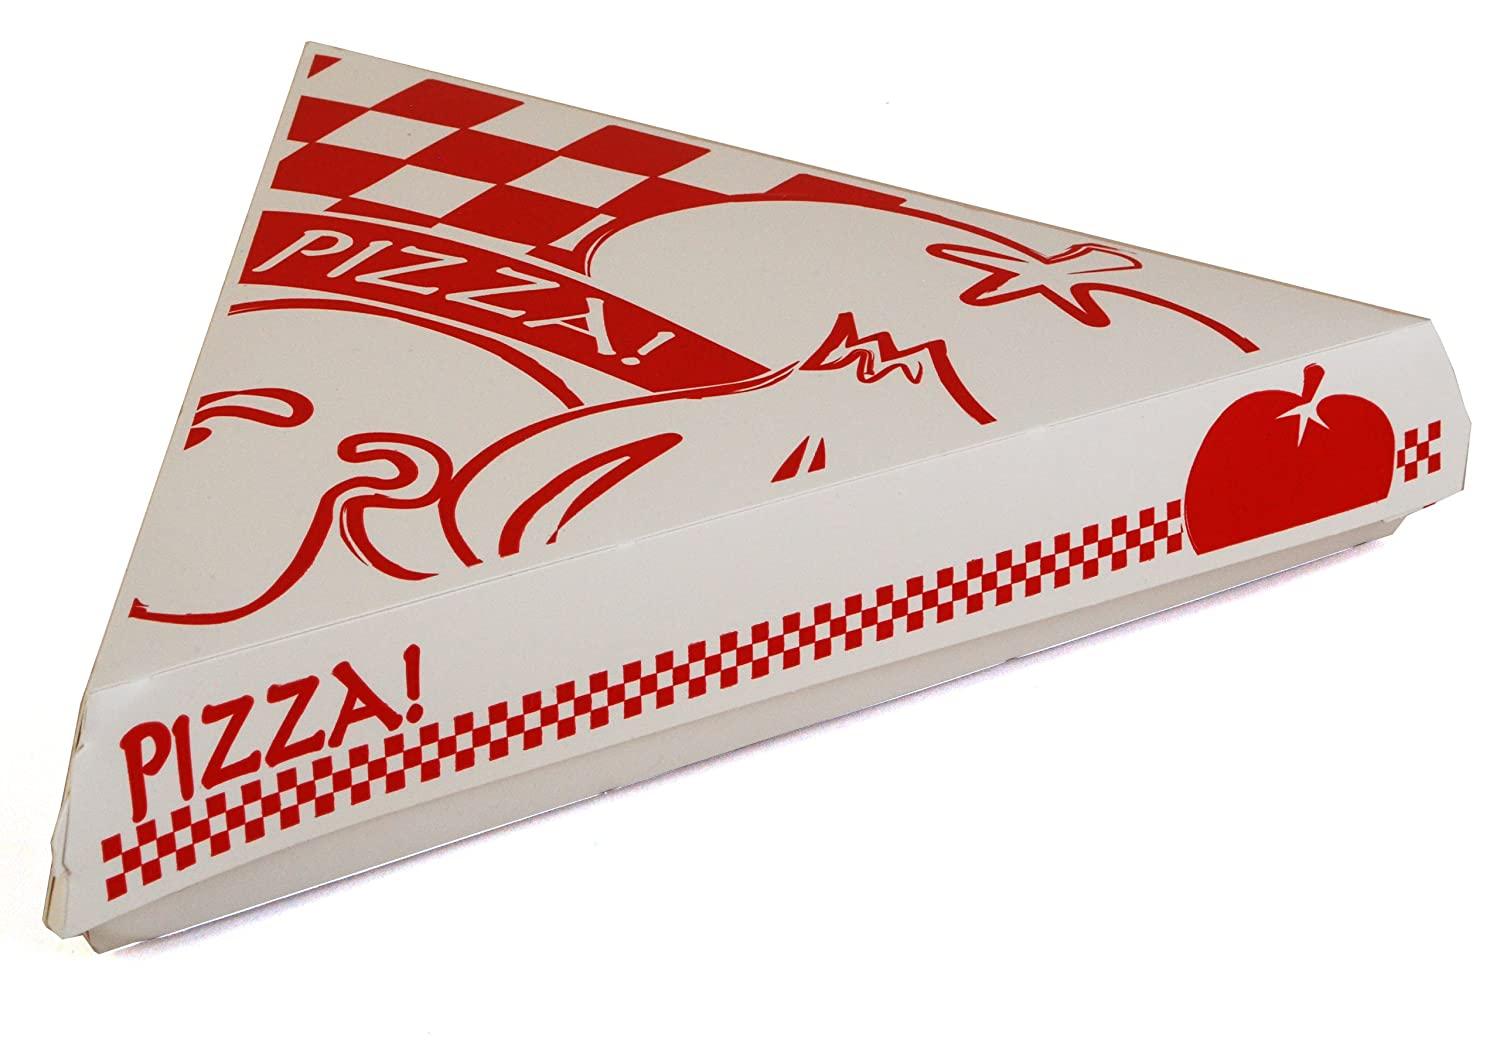 Tulsa Low price Mall Southern Champion Tray 07196 Paperboard Slice Clamsh Pizza White